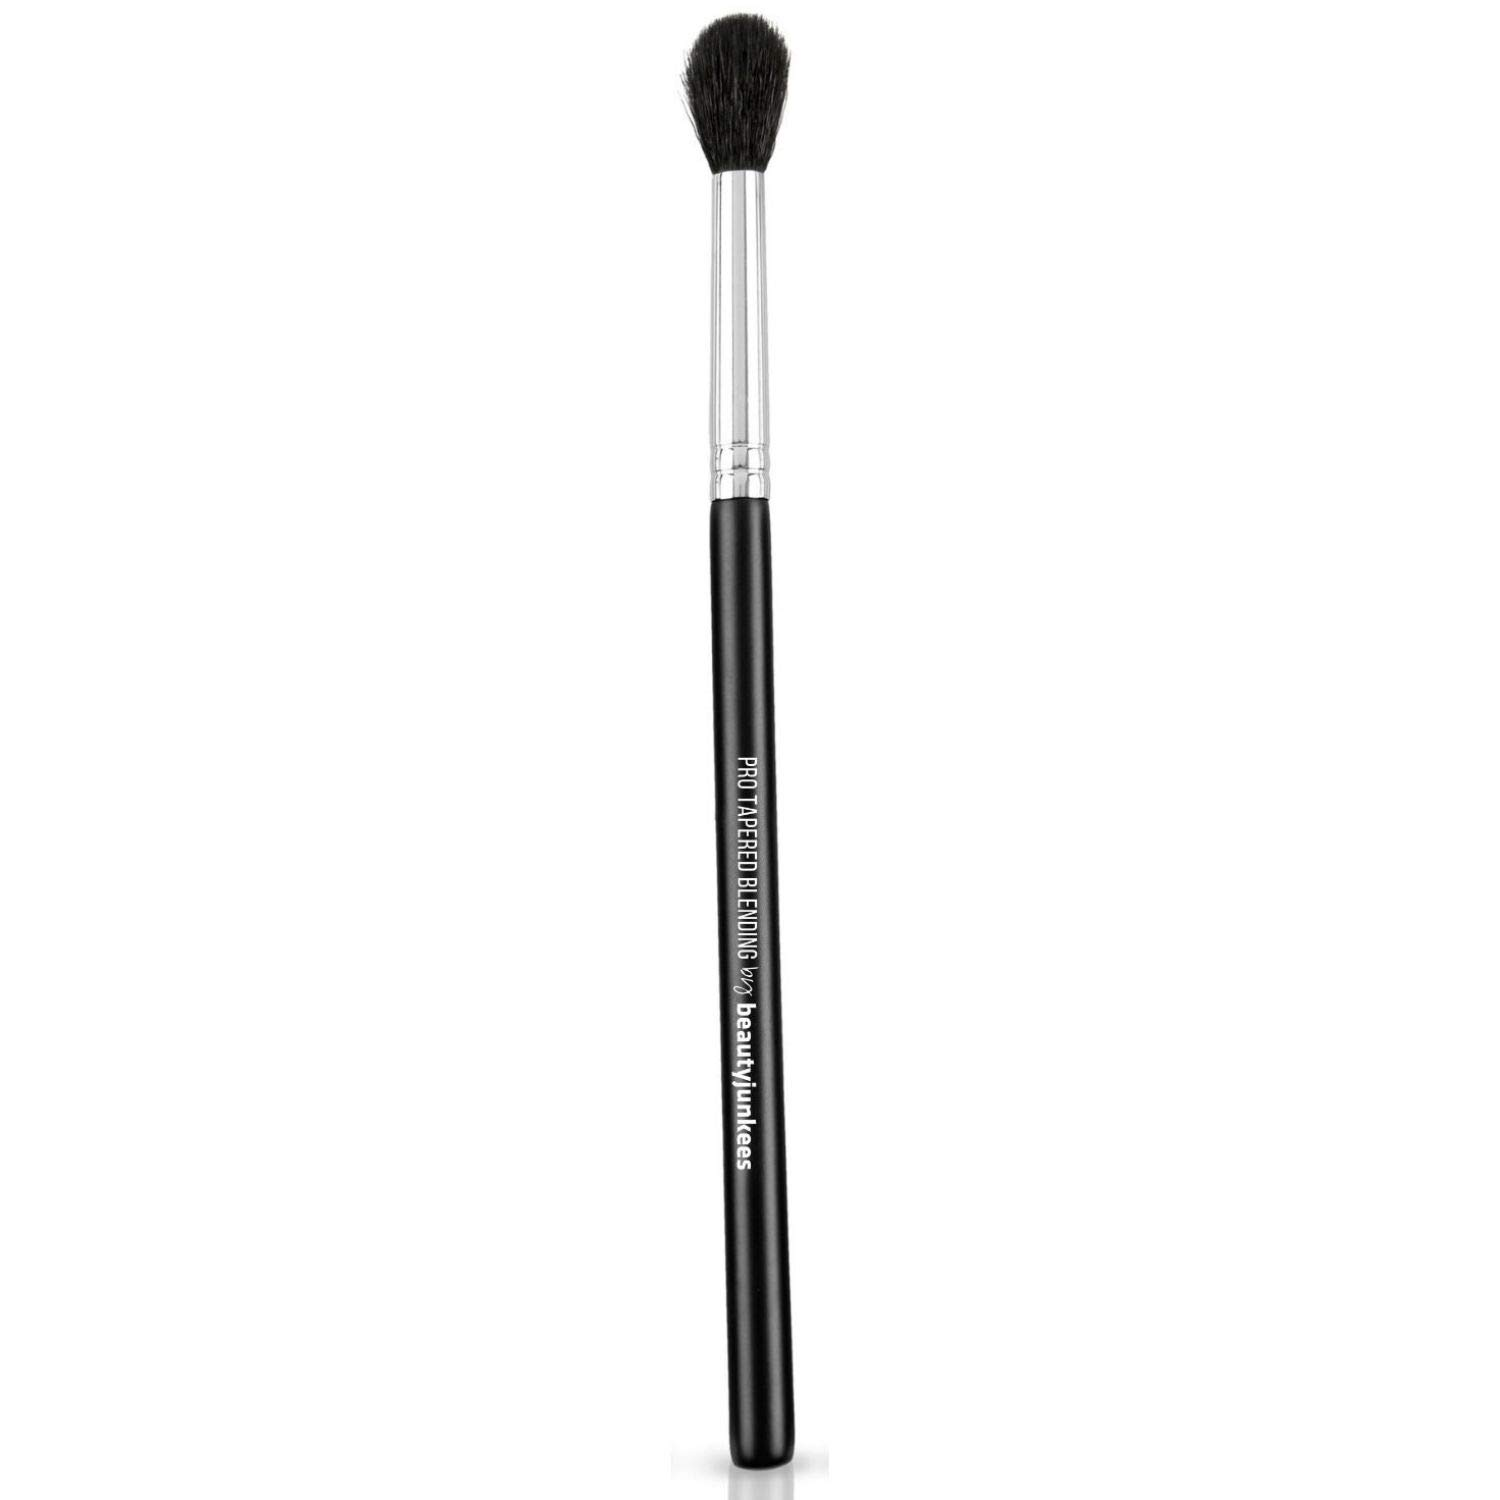 Tapered Blending Eyeshadow Makeup Brush – Eye Shadow Make Up Brush with Soft Bristles for a Perfectly Blended Crease Brochas Para Ojos